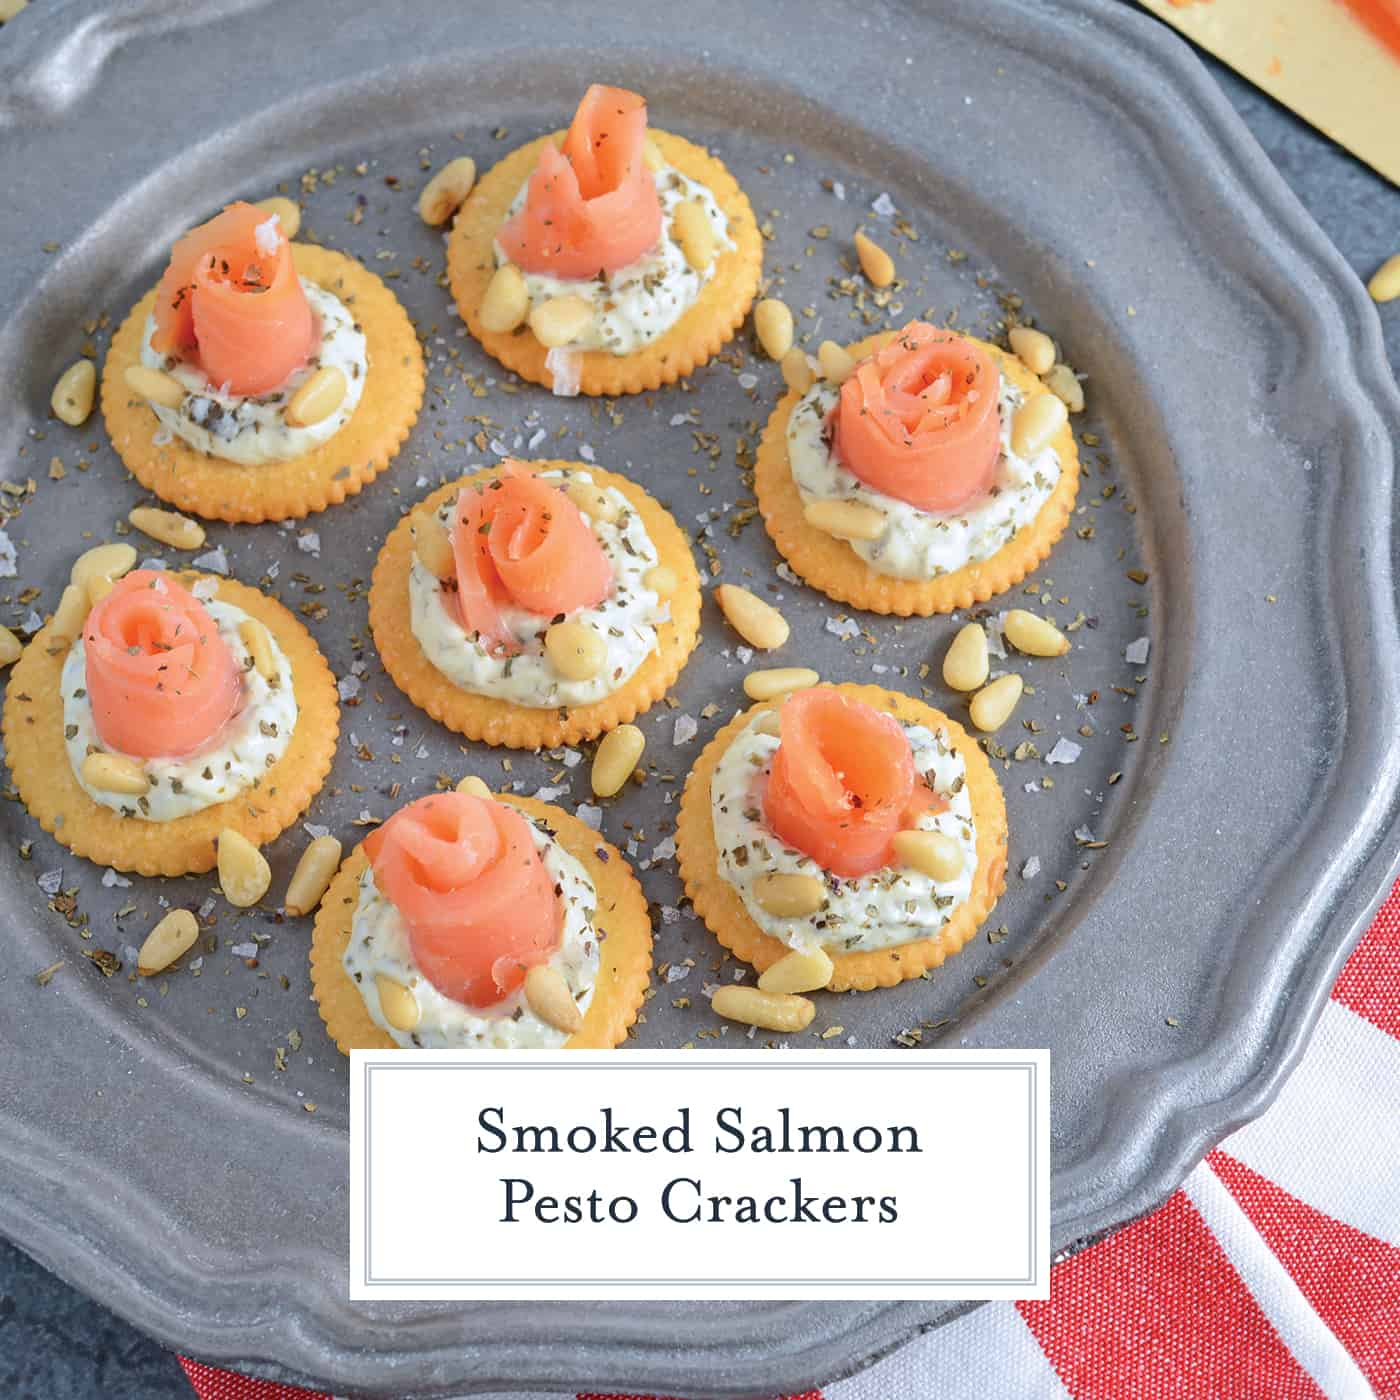 Smoked Salmon Pesto Crackers are an easy no-cook appetizer perfect for any potluck, party, or afternoon snack that everyone will enjoy! #smokedsalmonappetizer #smokedsalmonrecipes www.savoryexperiments.com